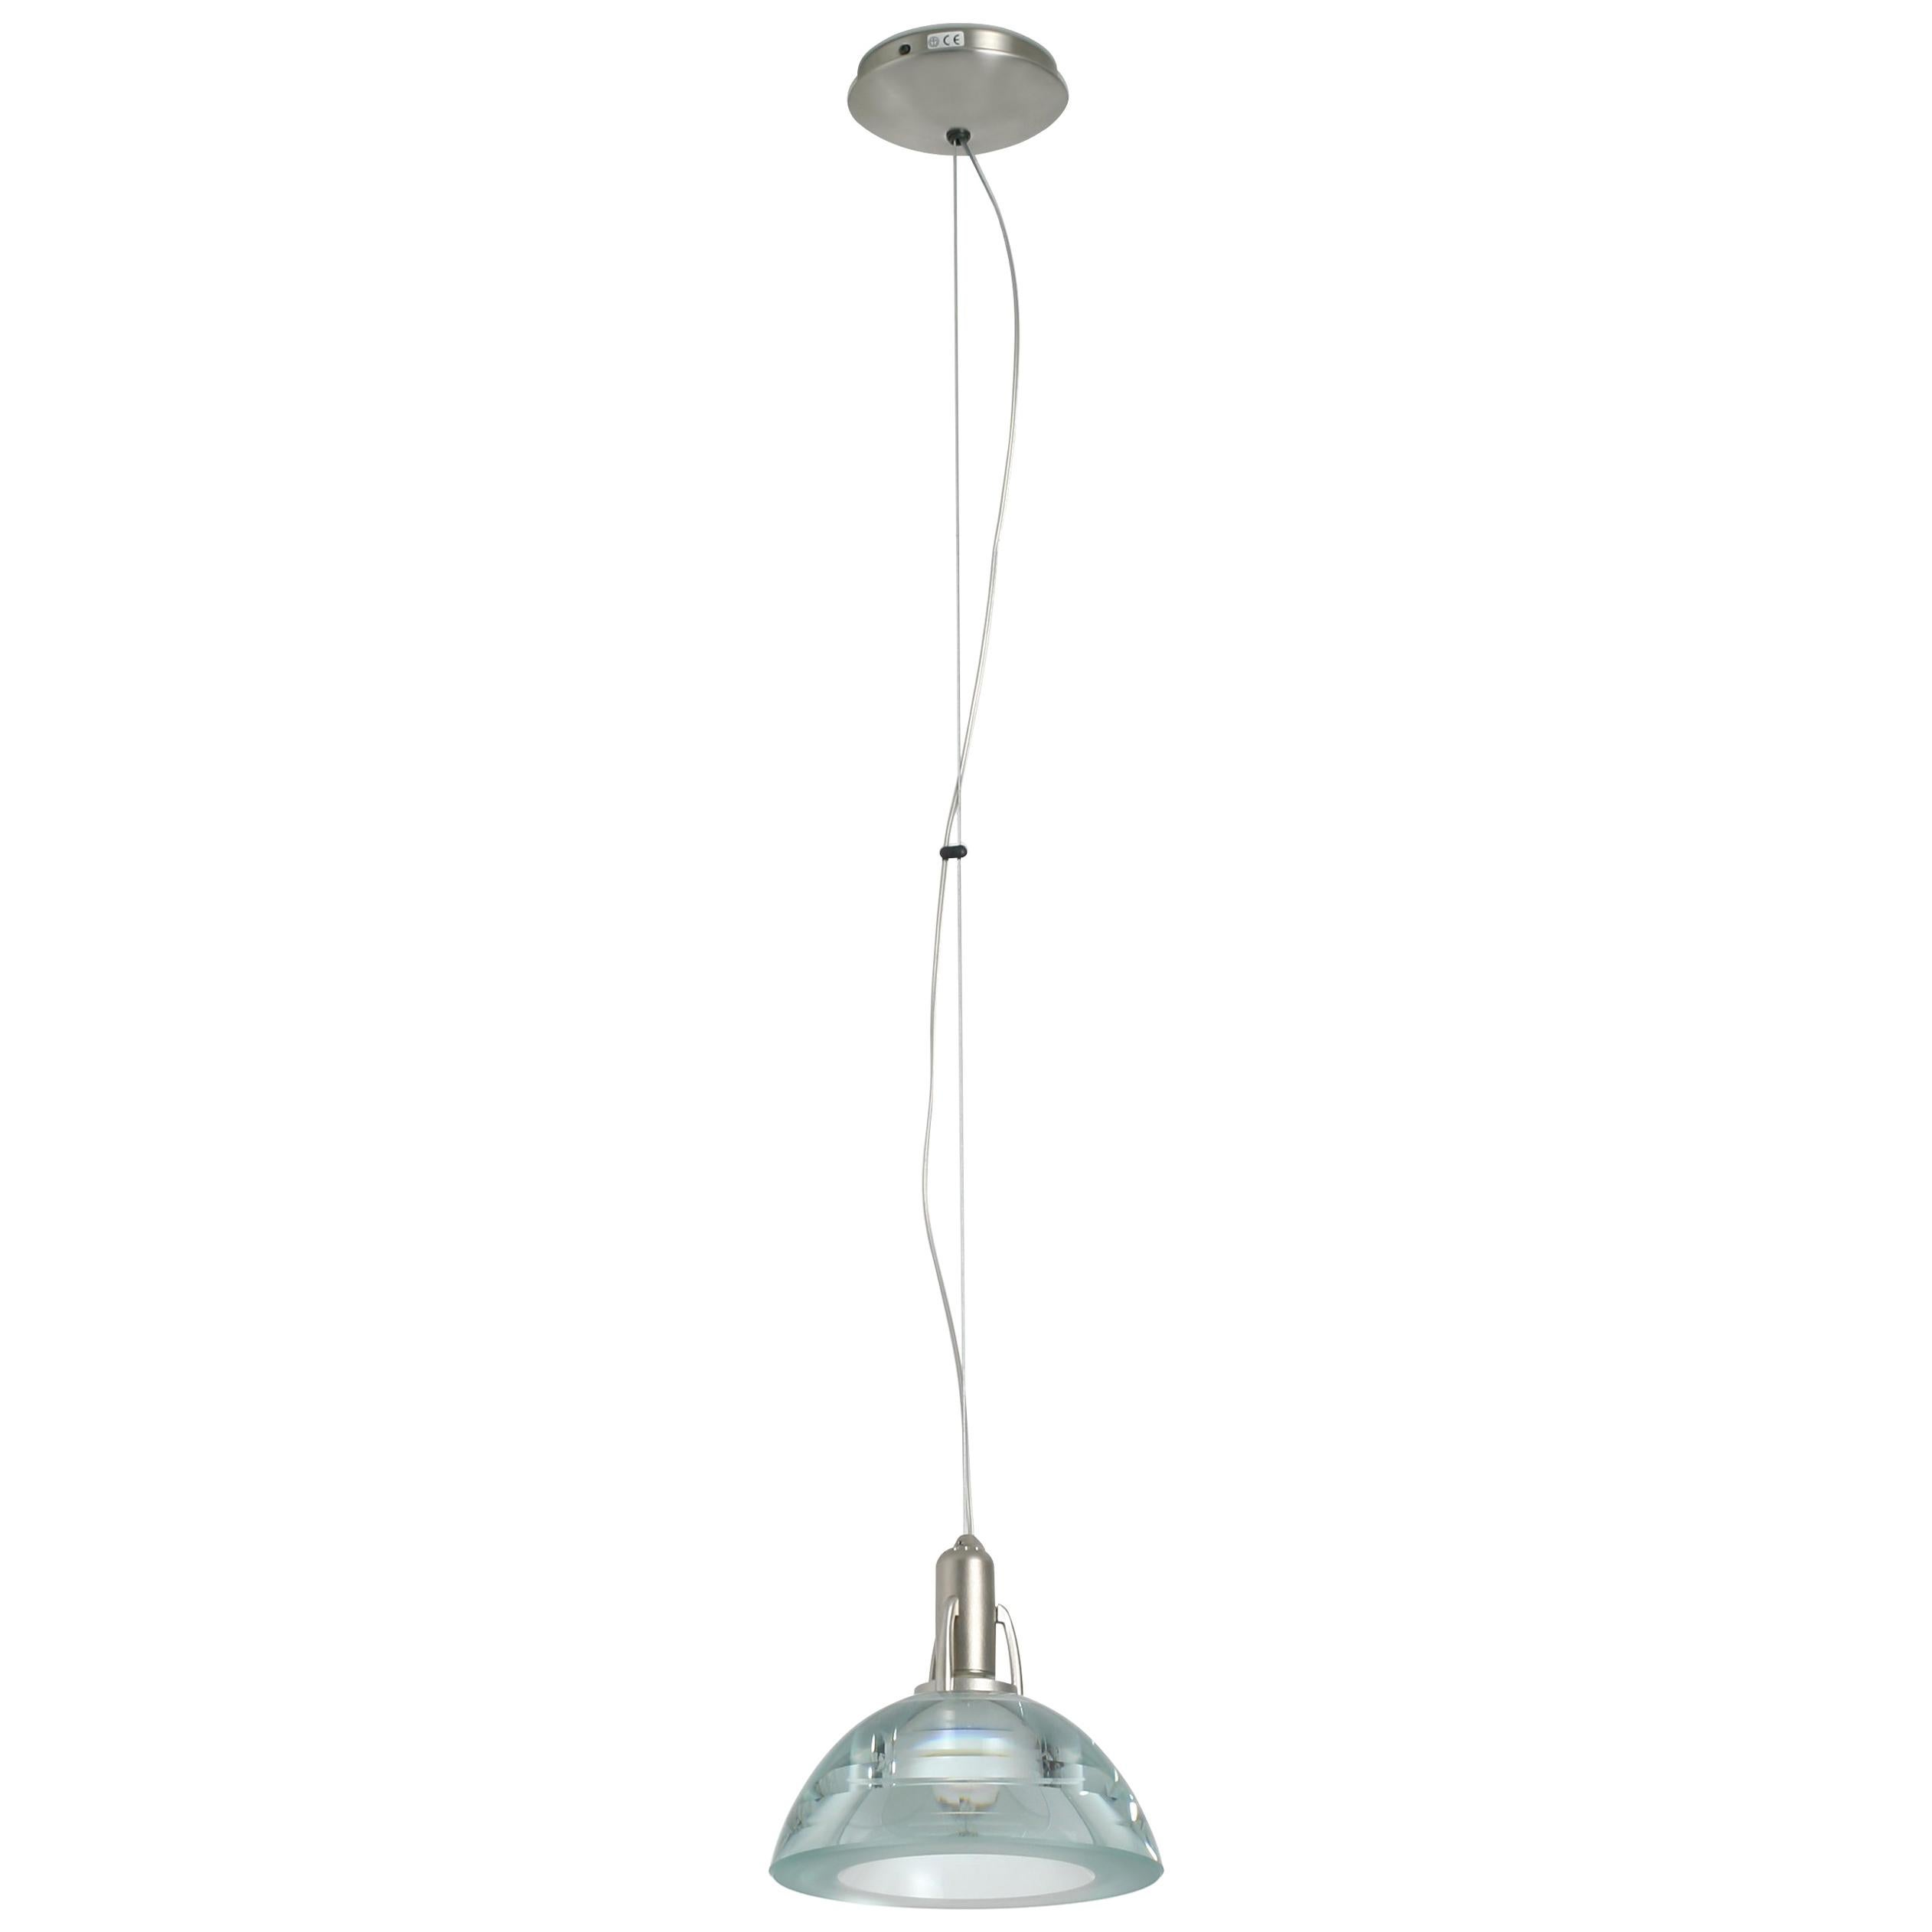 Lumina Galileo Dimmable Suspension Lamp by Emanuele Ricci